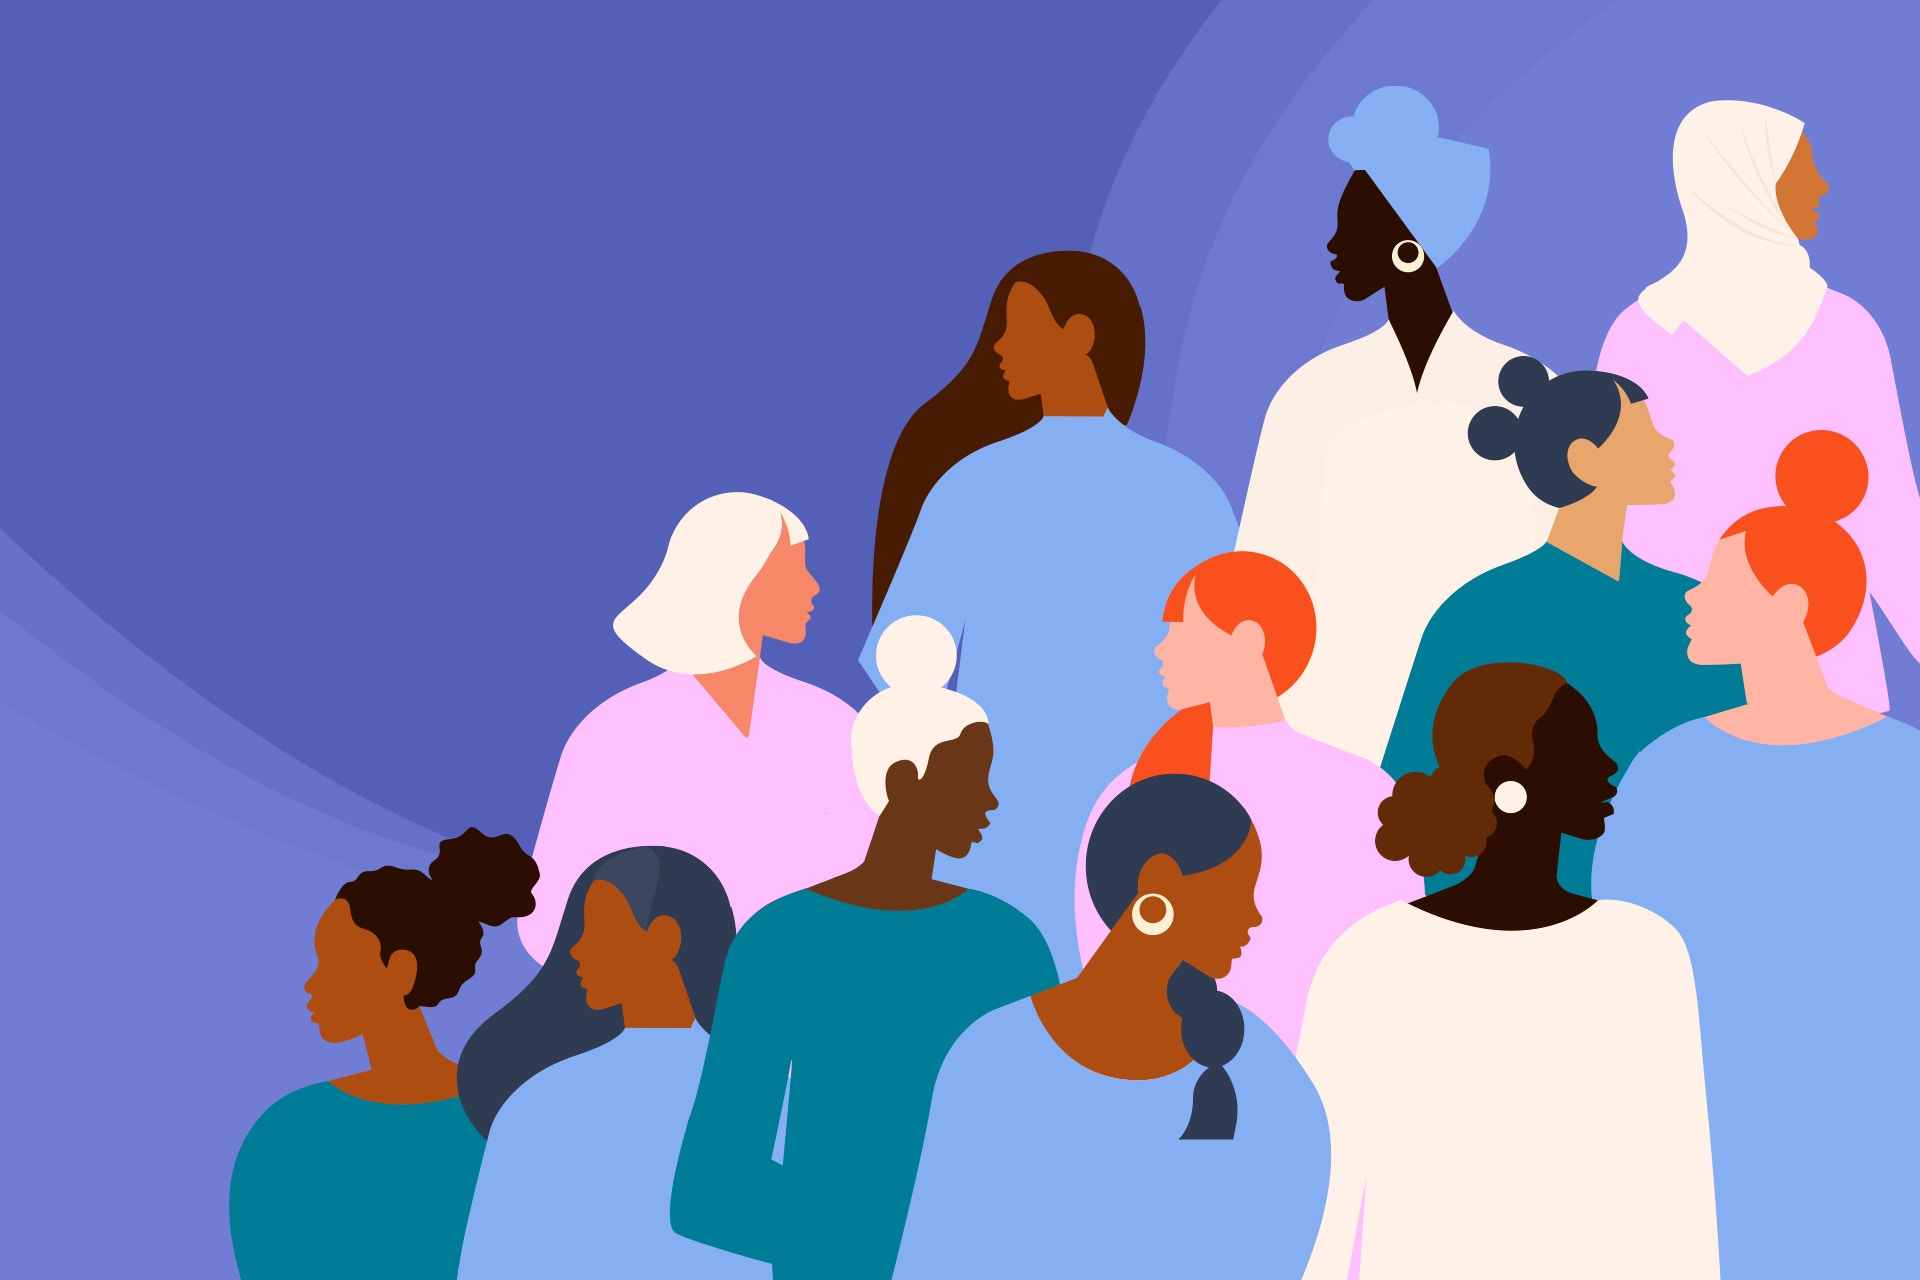 An illustration of a diverse group of women against a purple backdrop